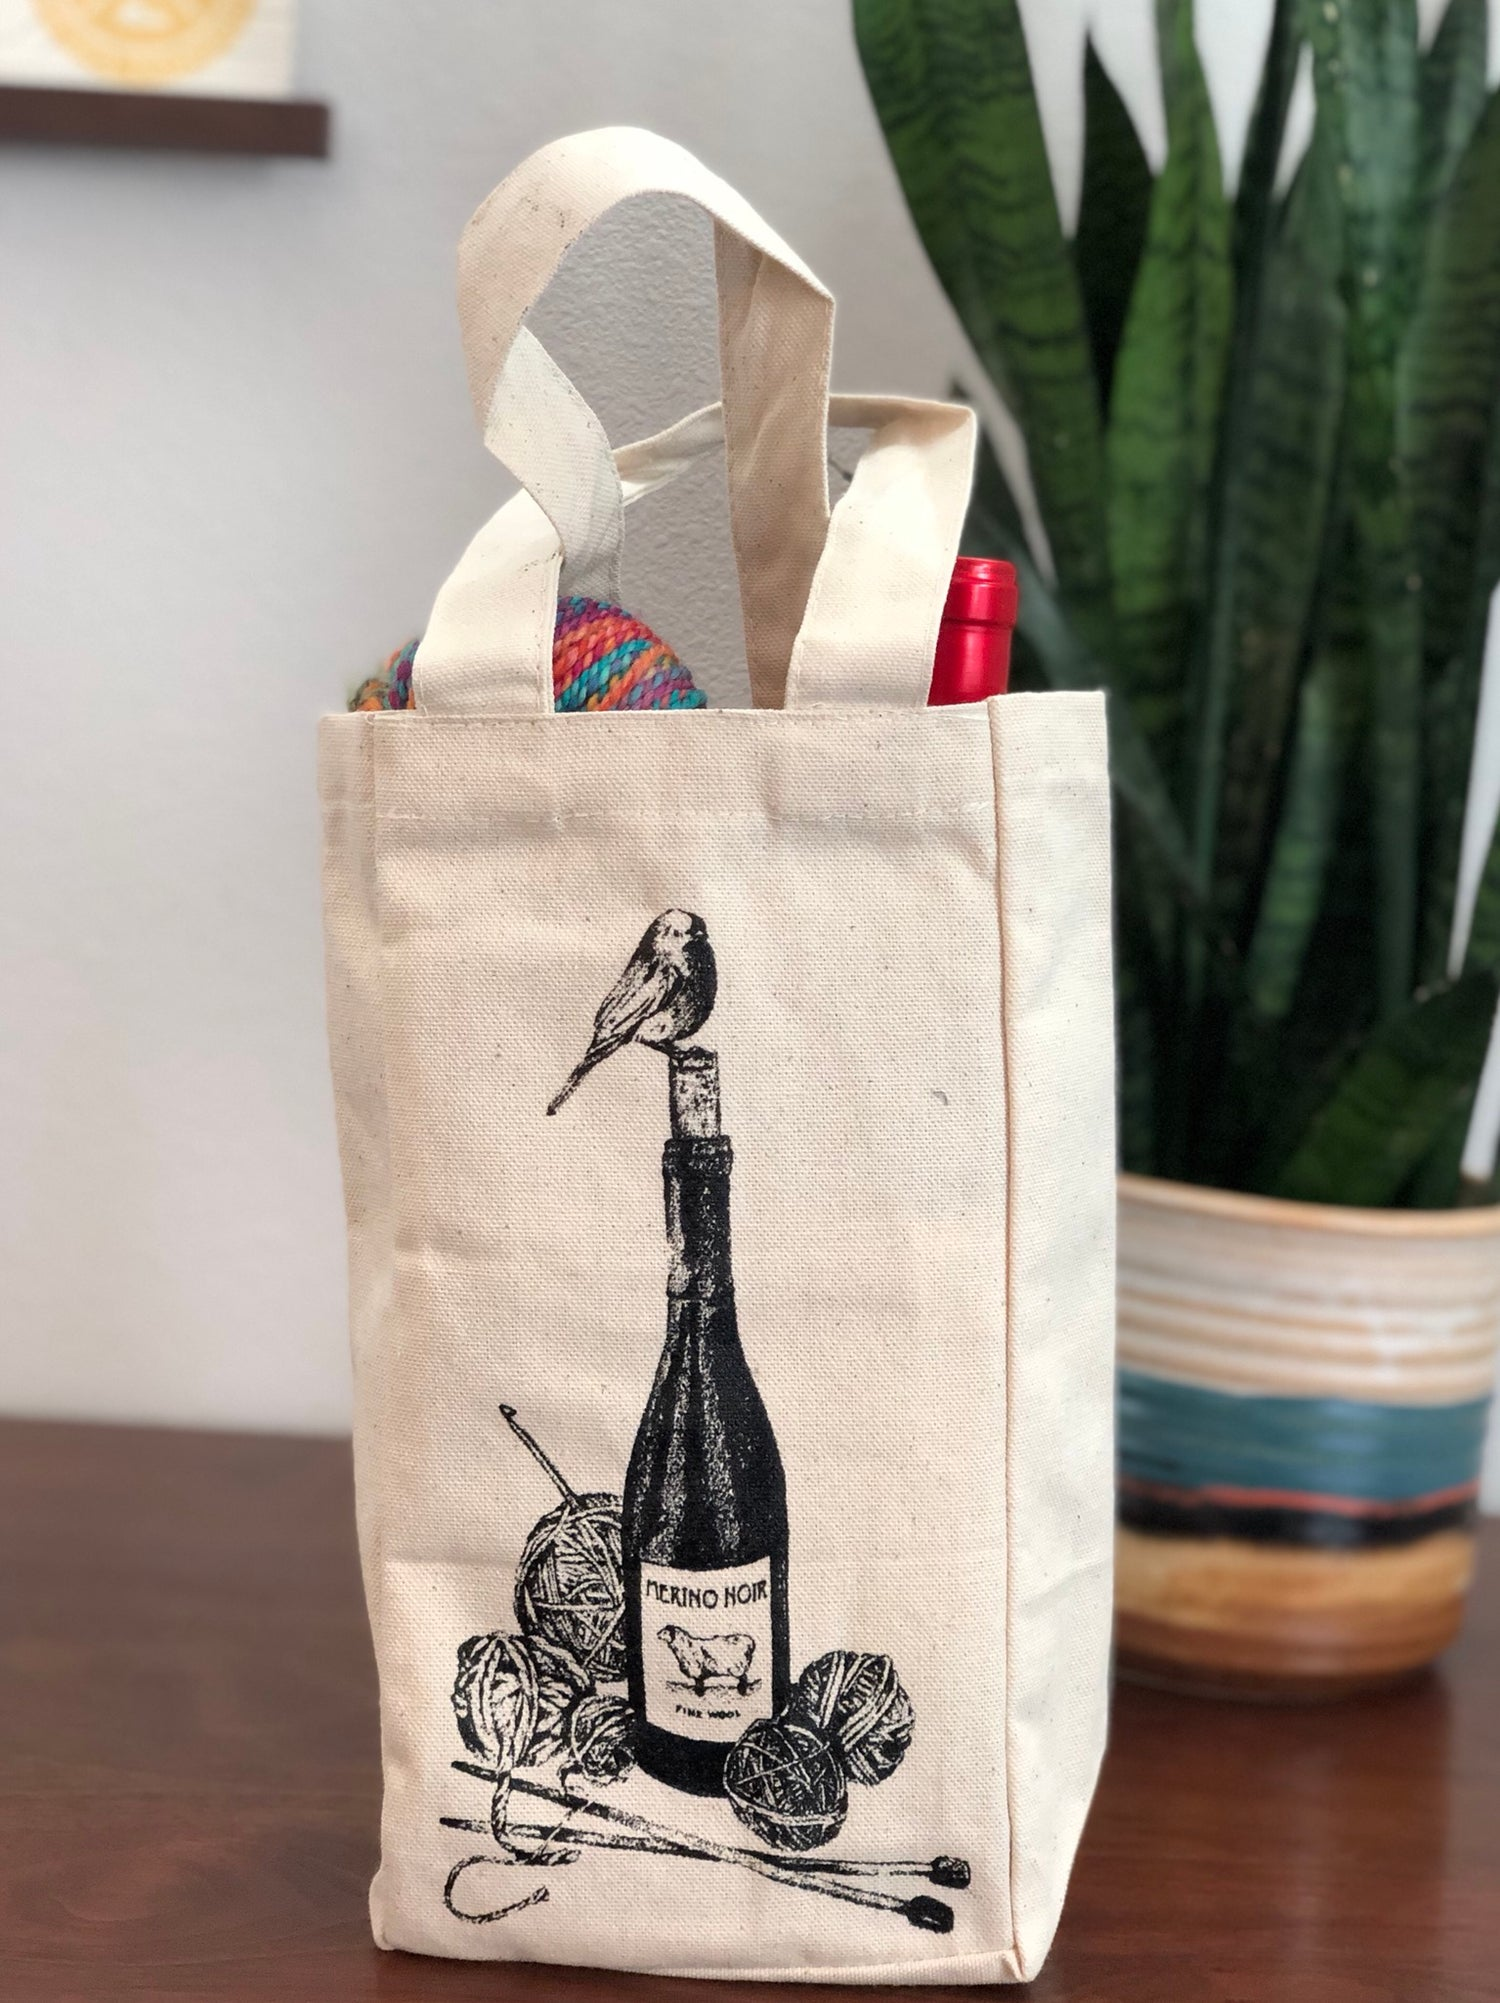 Image of Merino Noir Wool + Wine Project/Wine Tote